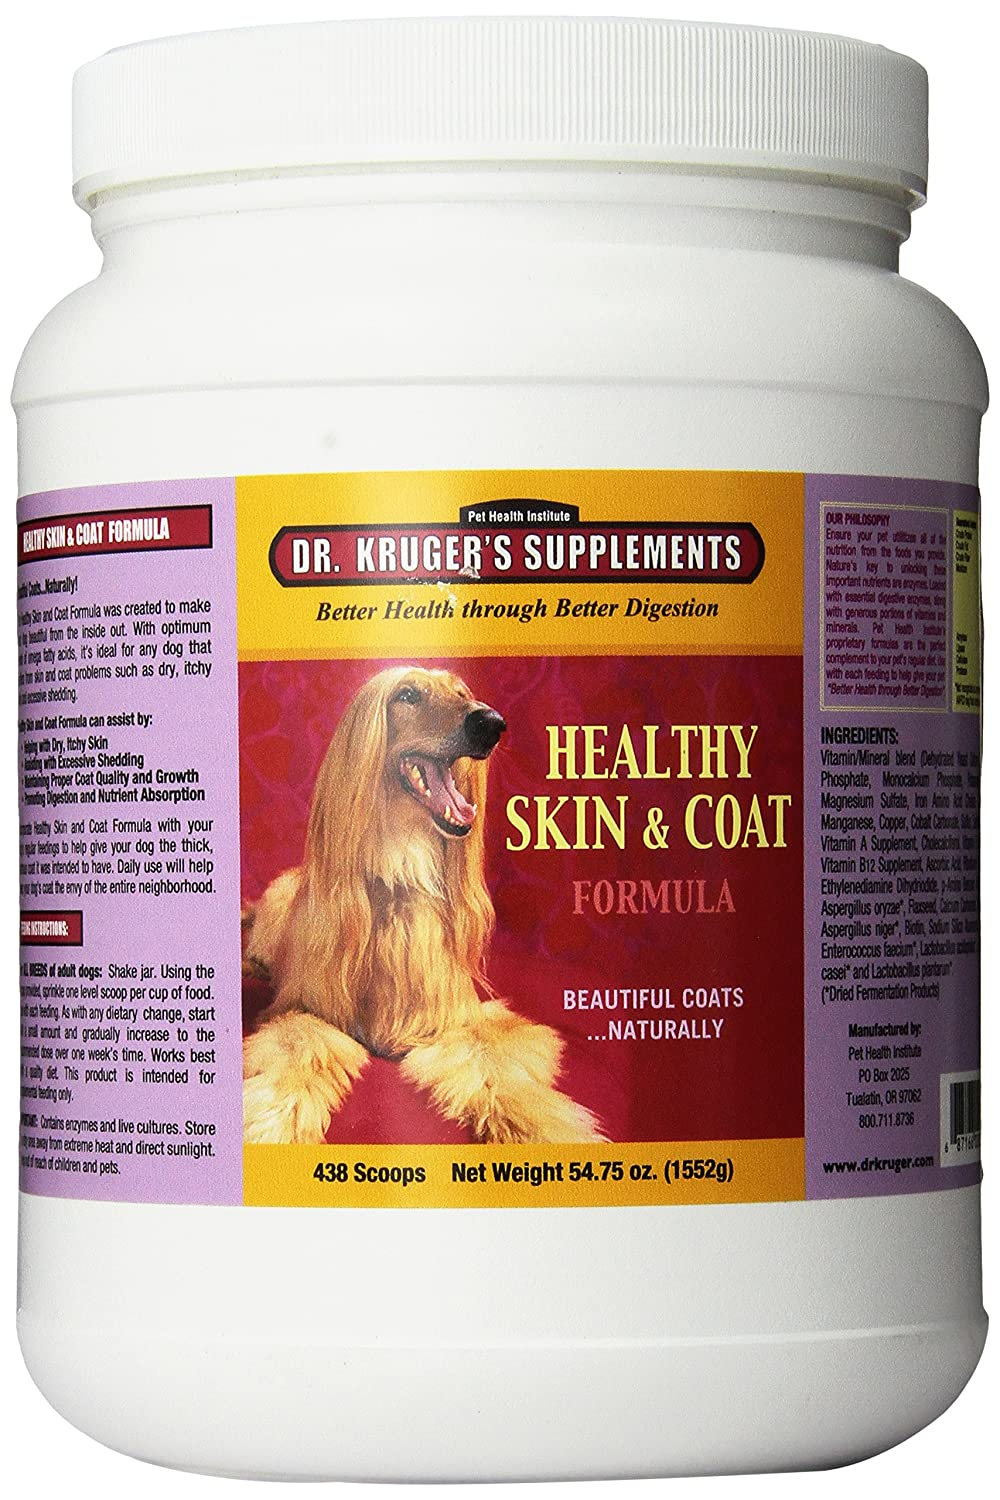 Dr Kruger Pet Supplements Healthy Skin And Coat Food For Dogs, 54.75-Ounce